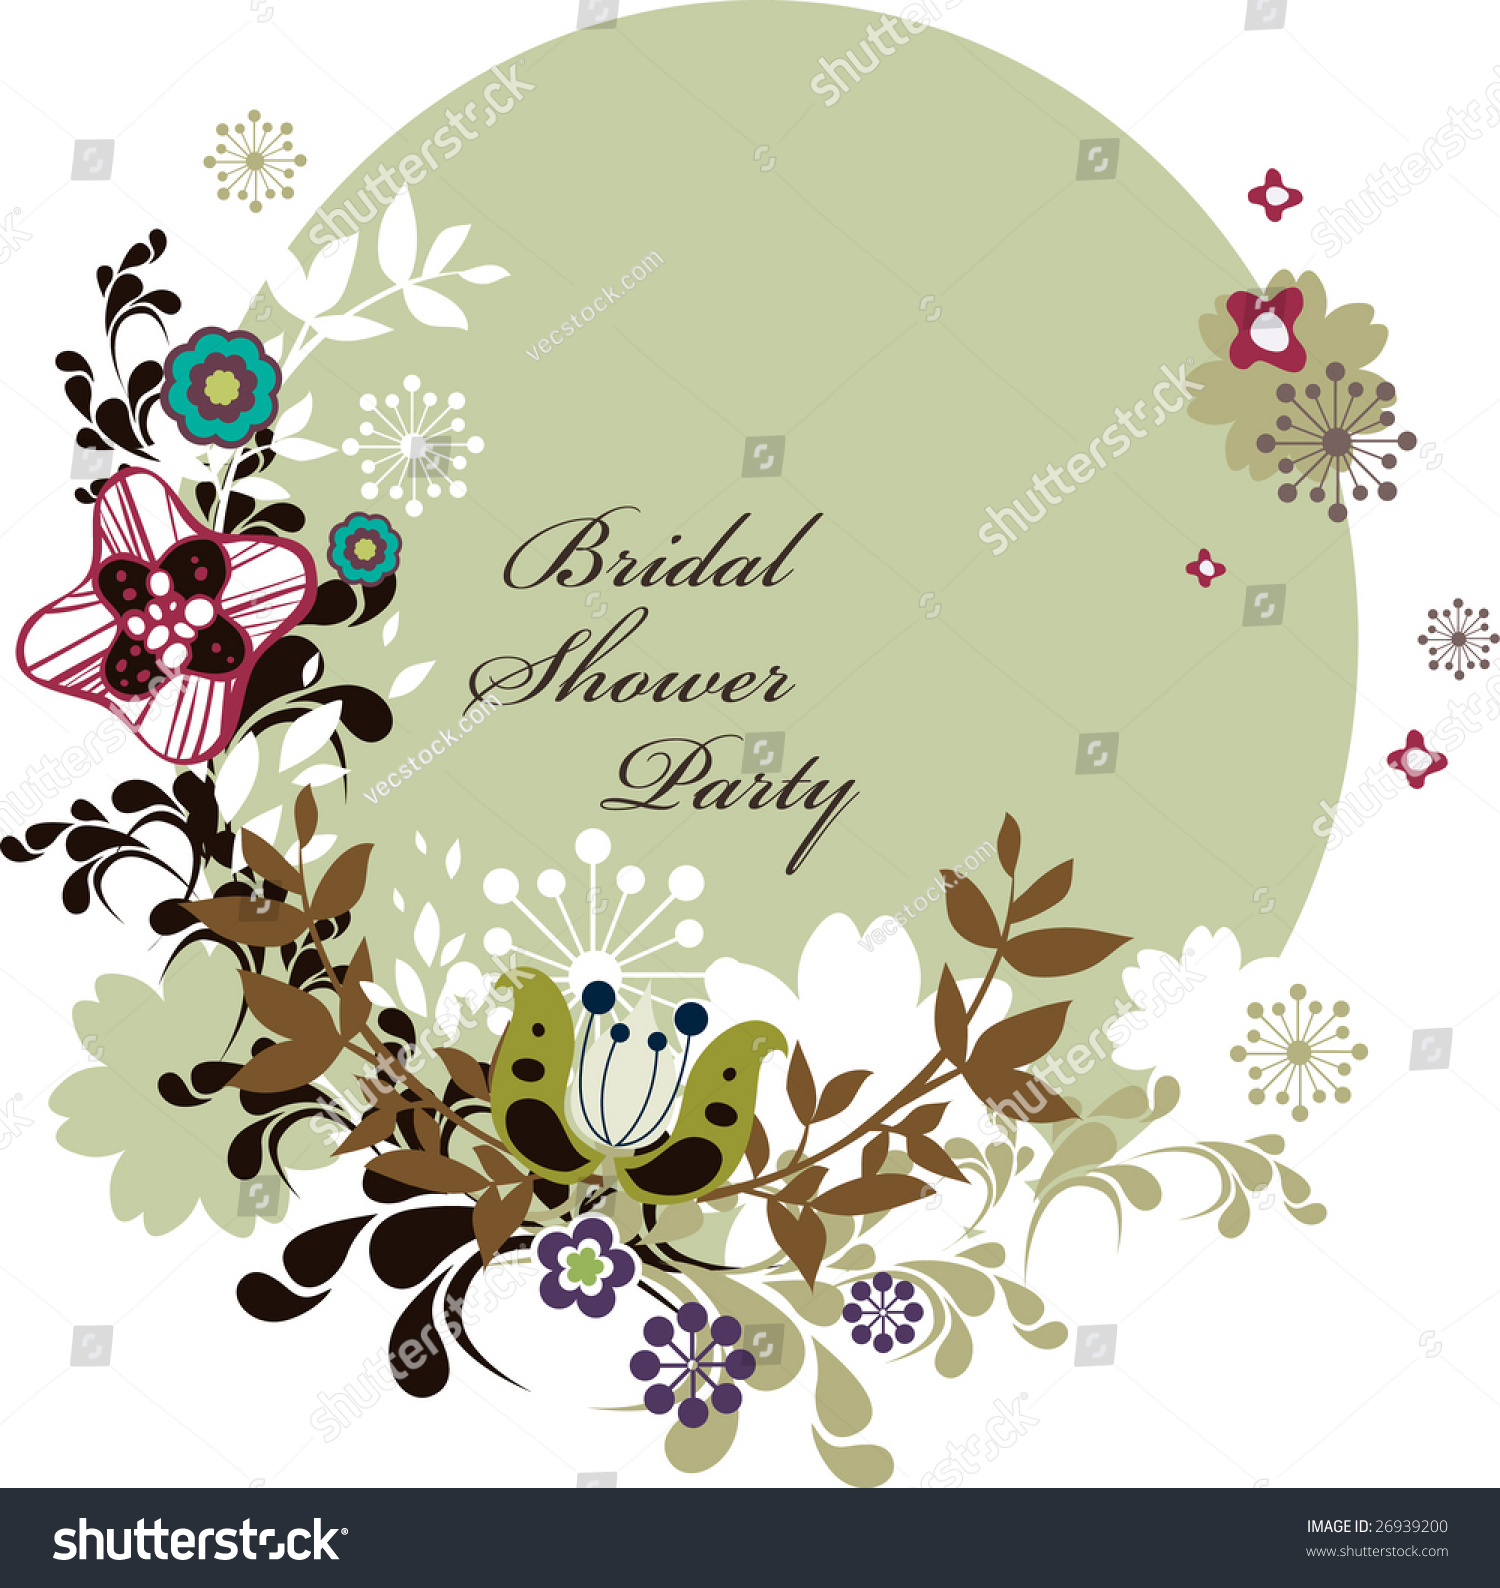 Invitation Party Wedding Free Vector Graphic On Pixabay: Bridal Shower Party Invitation Card Stock Vector